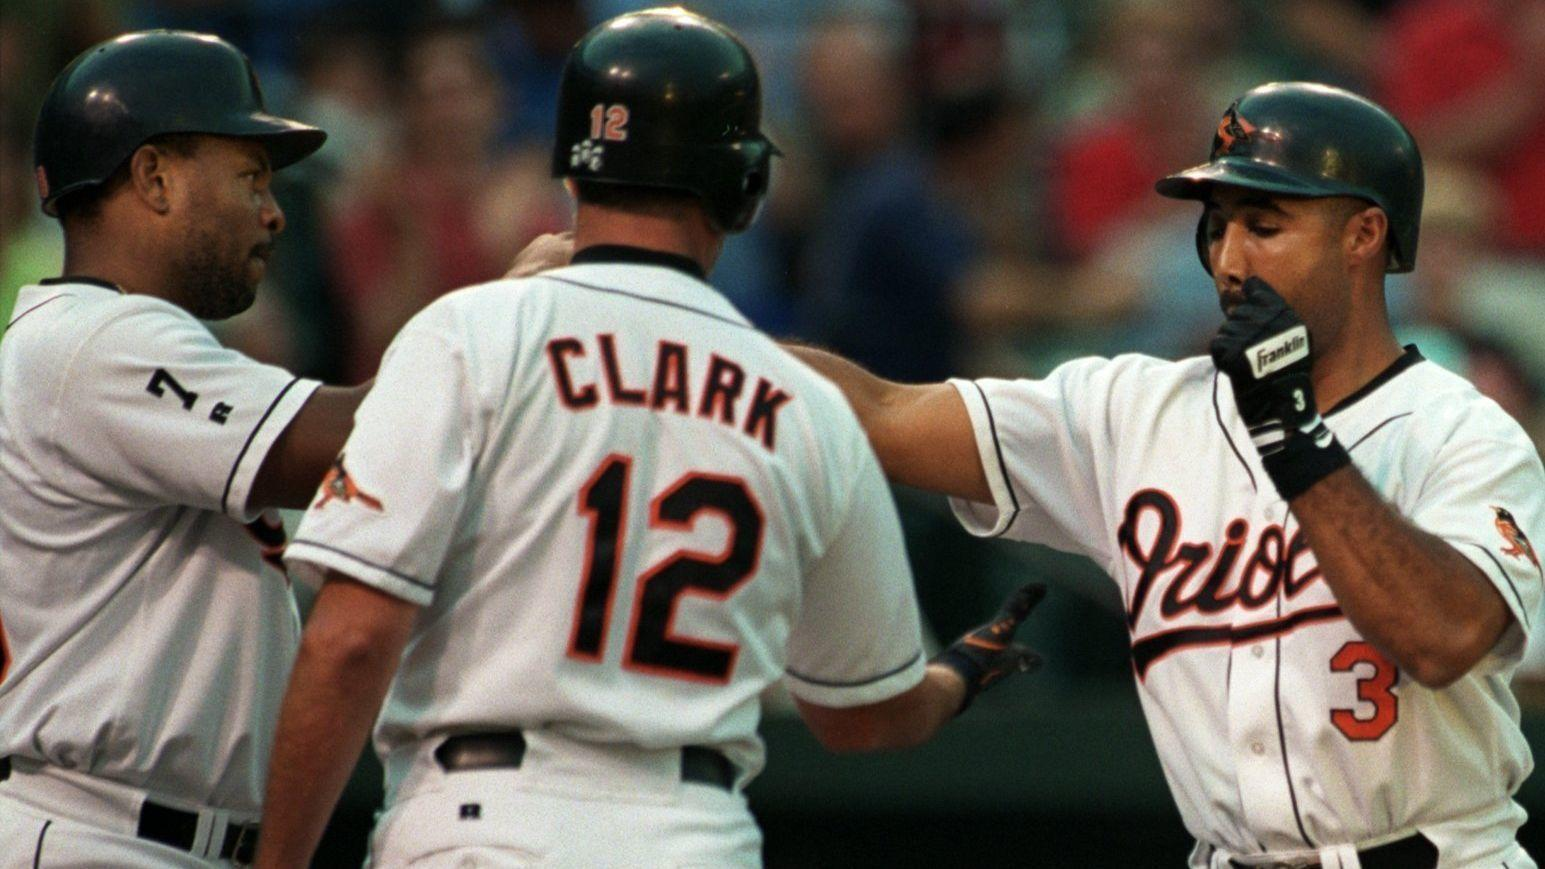 Bs-sp-baseball-hall-of-fame-candidates-orioles-1106